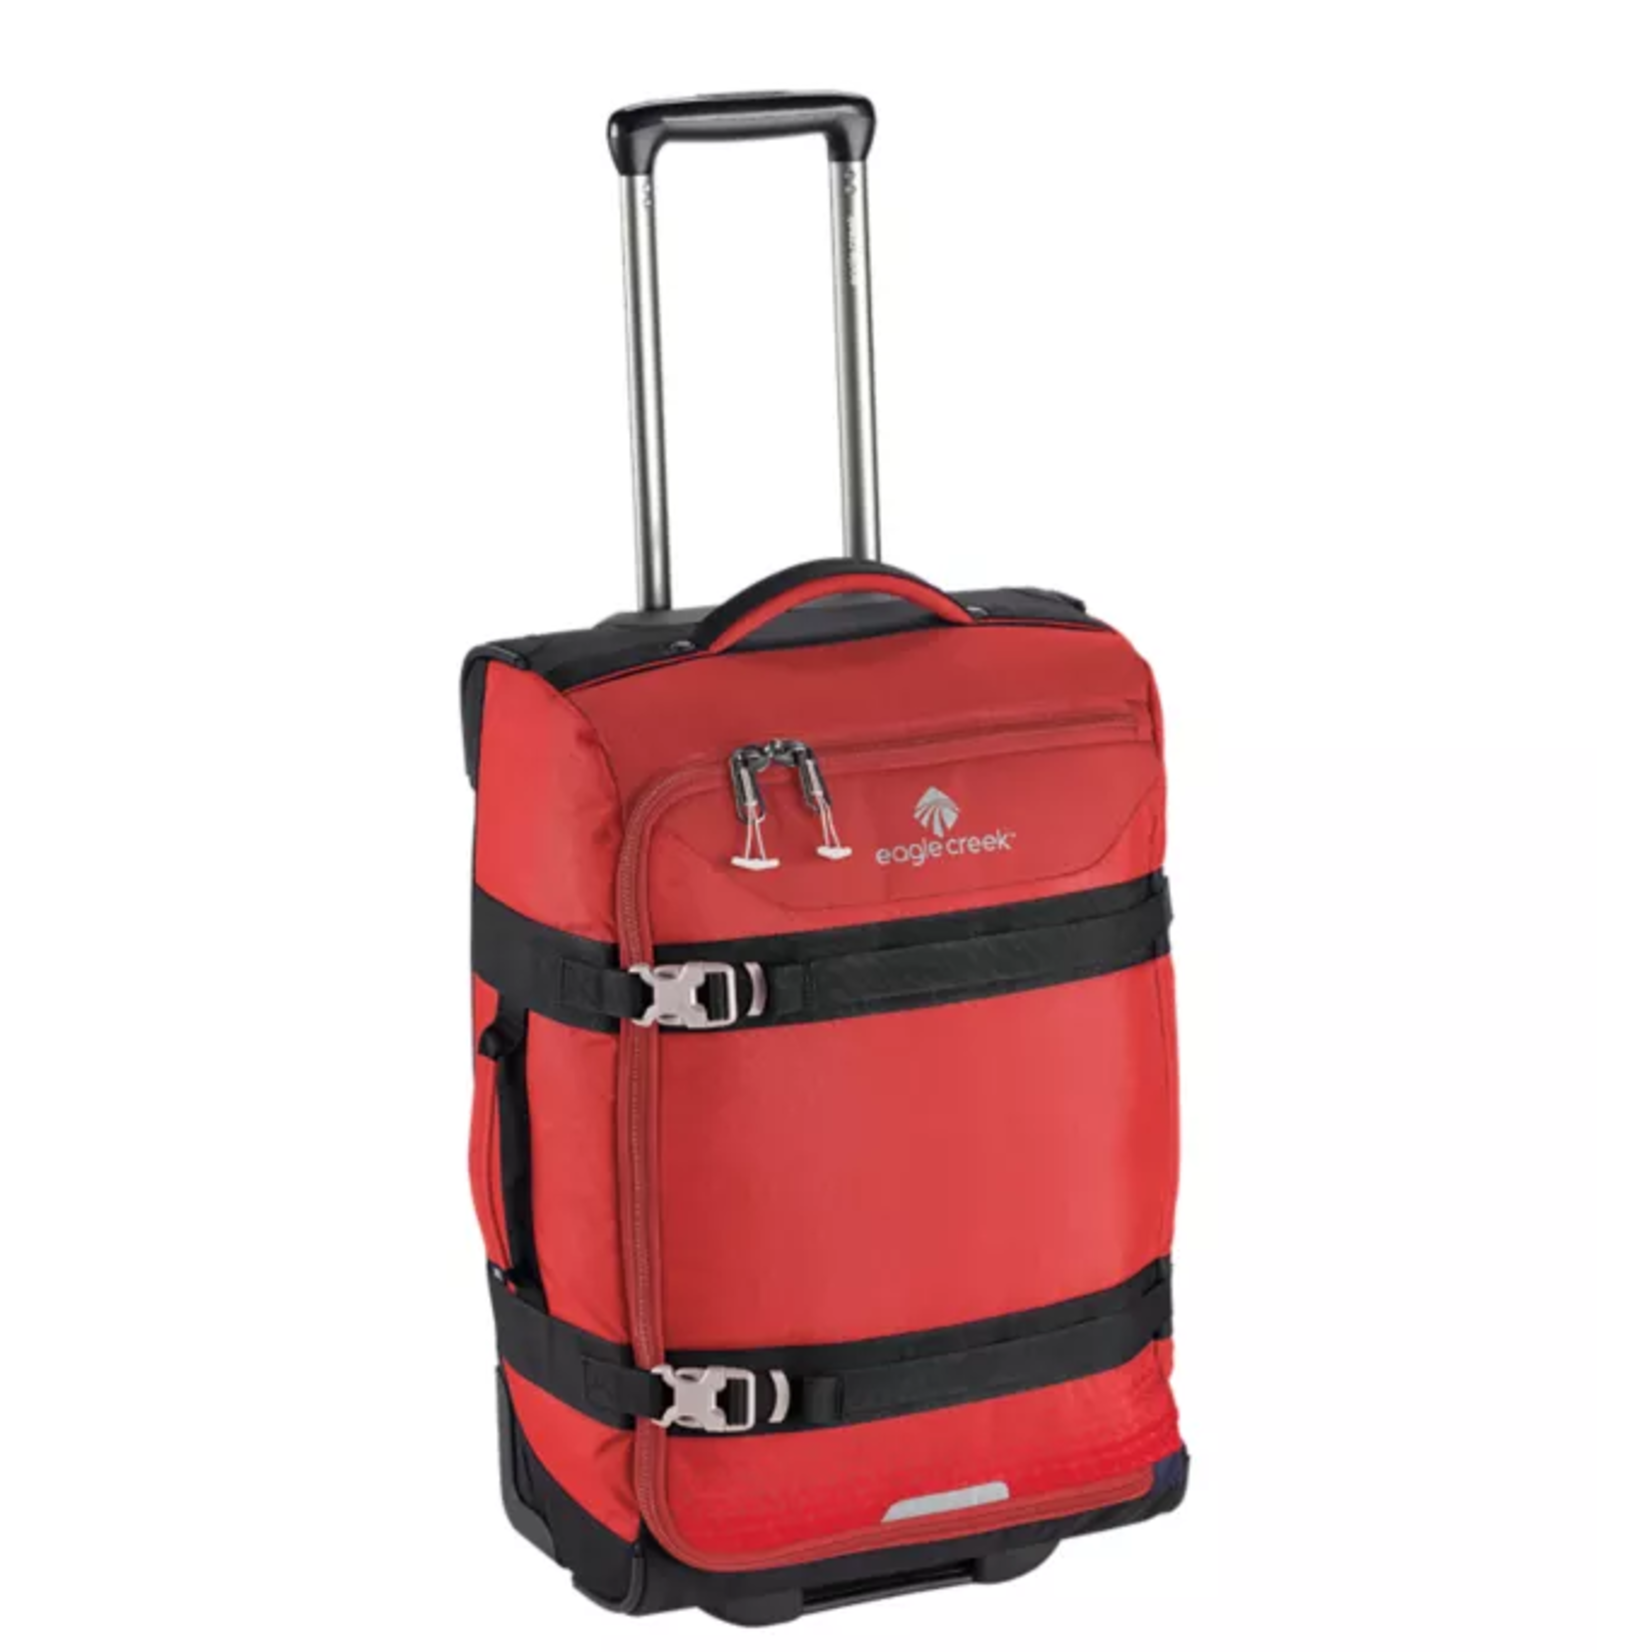 EAGLE CREEK EXPANSE INT'L CARRY-ON WHEELED DUFFLE